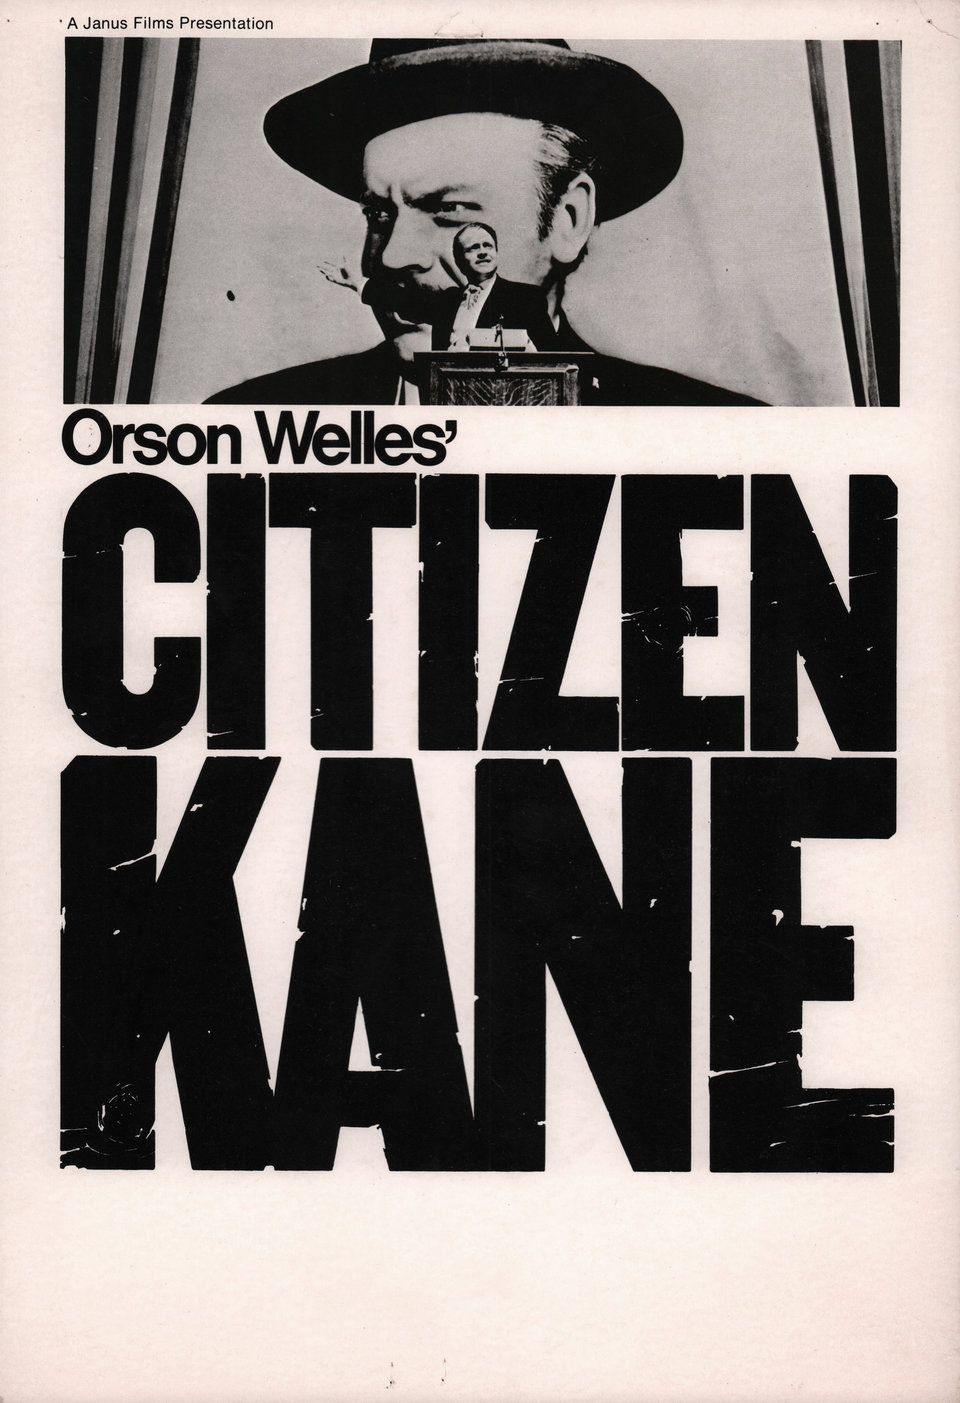 Citizen Kane R1960s U S Mini Window Card Poster Posteritati Movie Poster Gallery New York Posteres De Filmes Poster Filmes